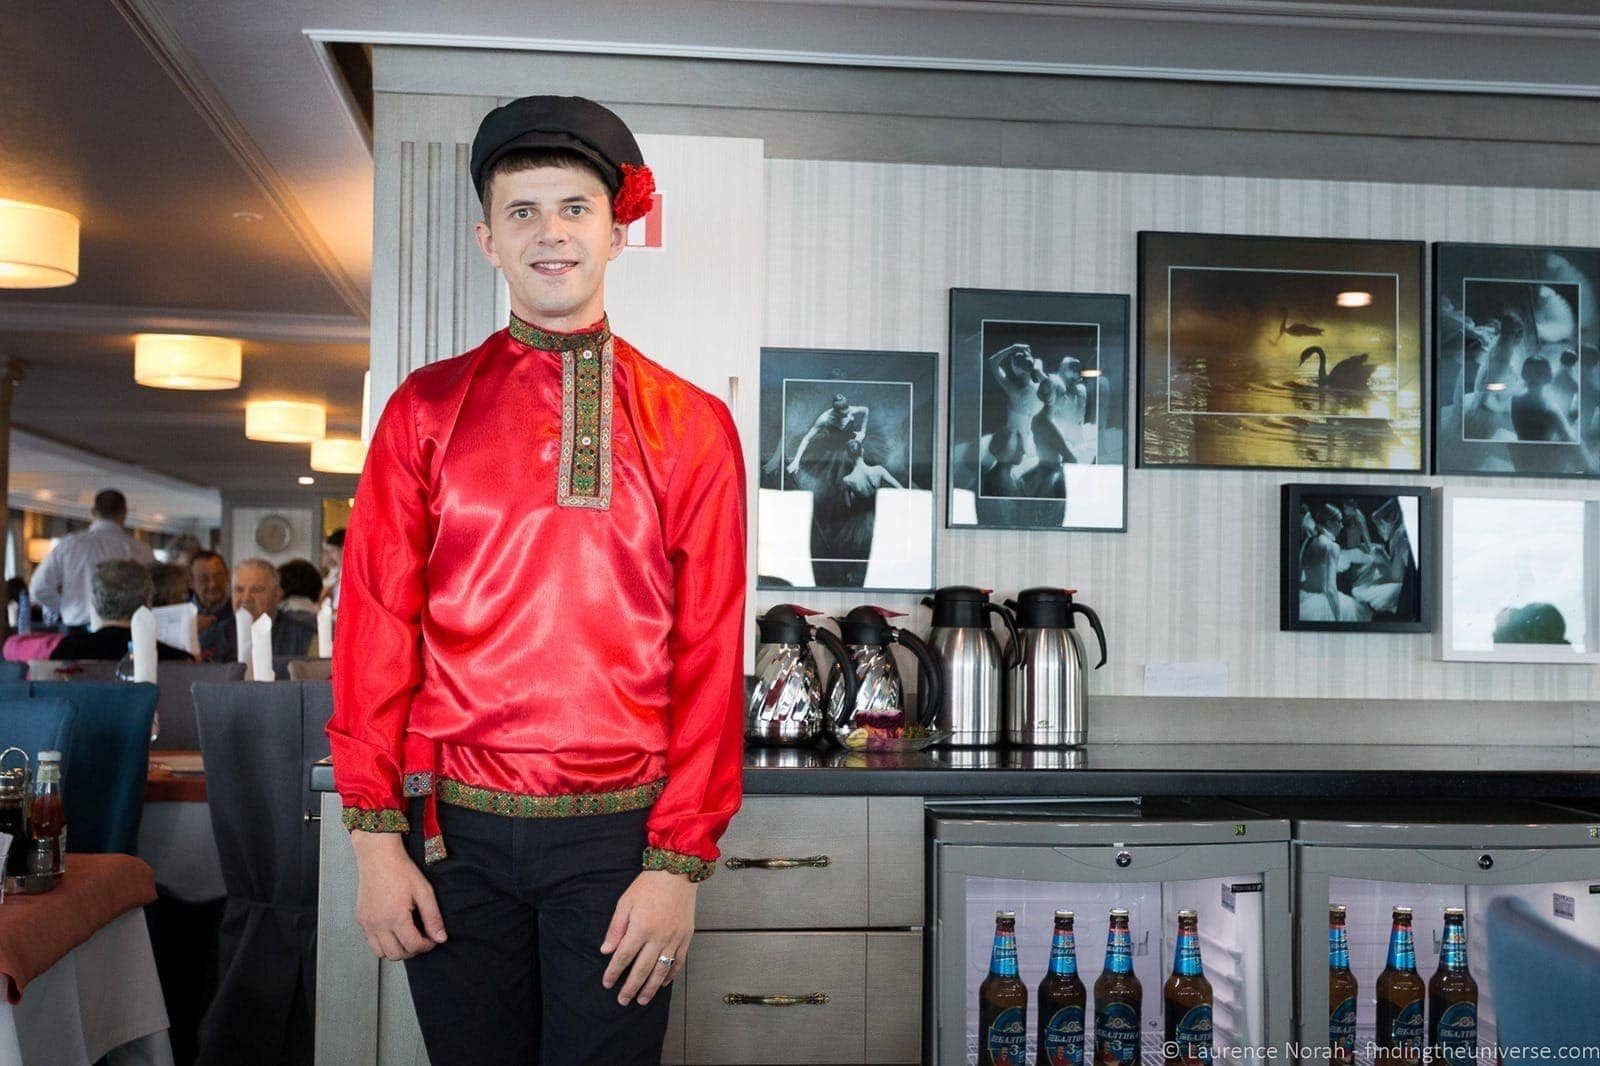 Russia river cruise staff uniform